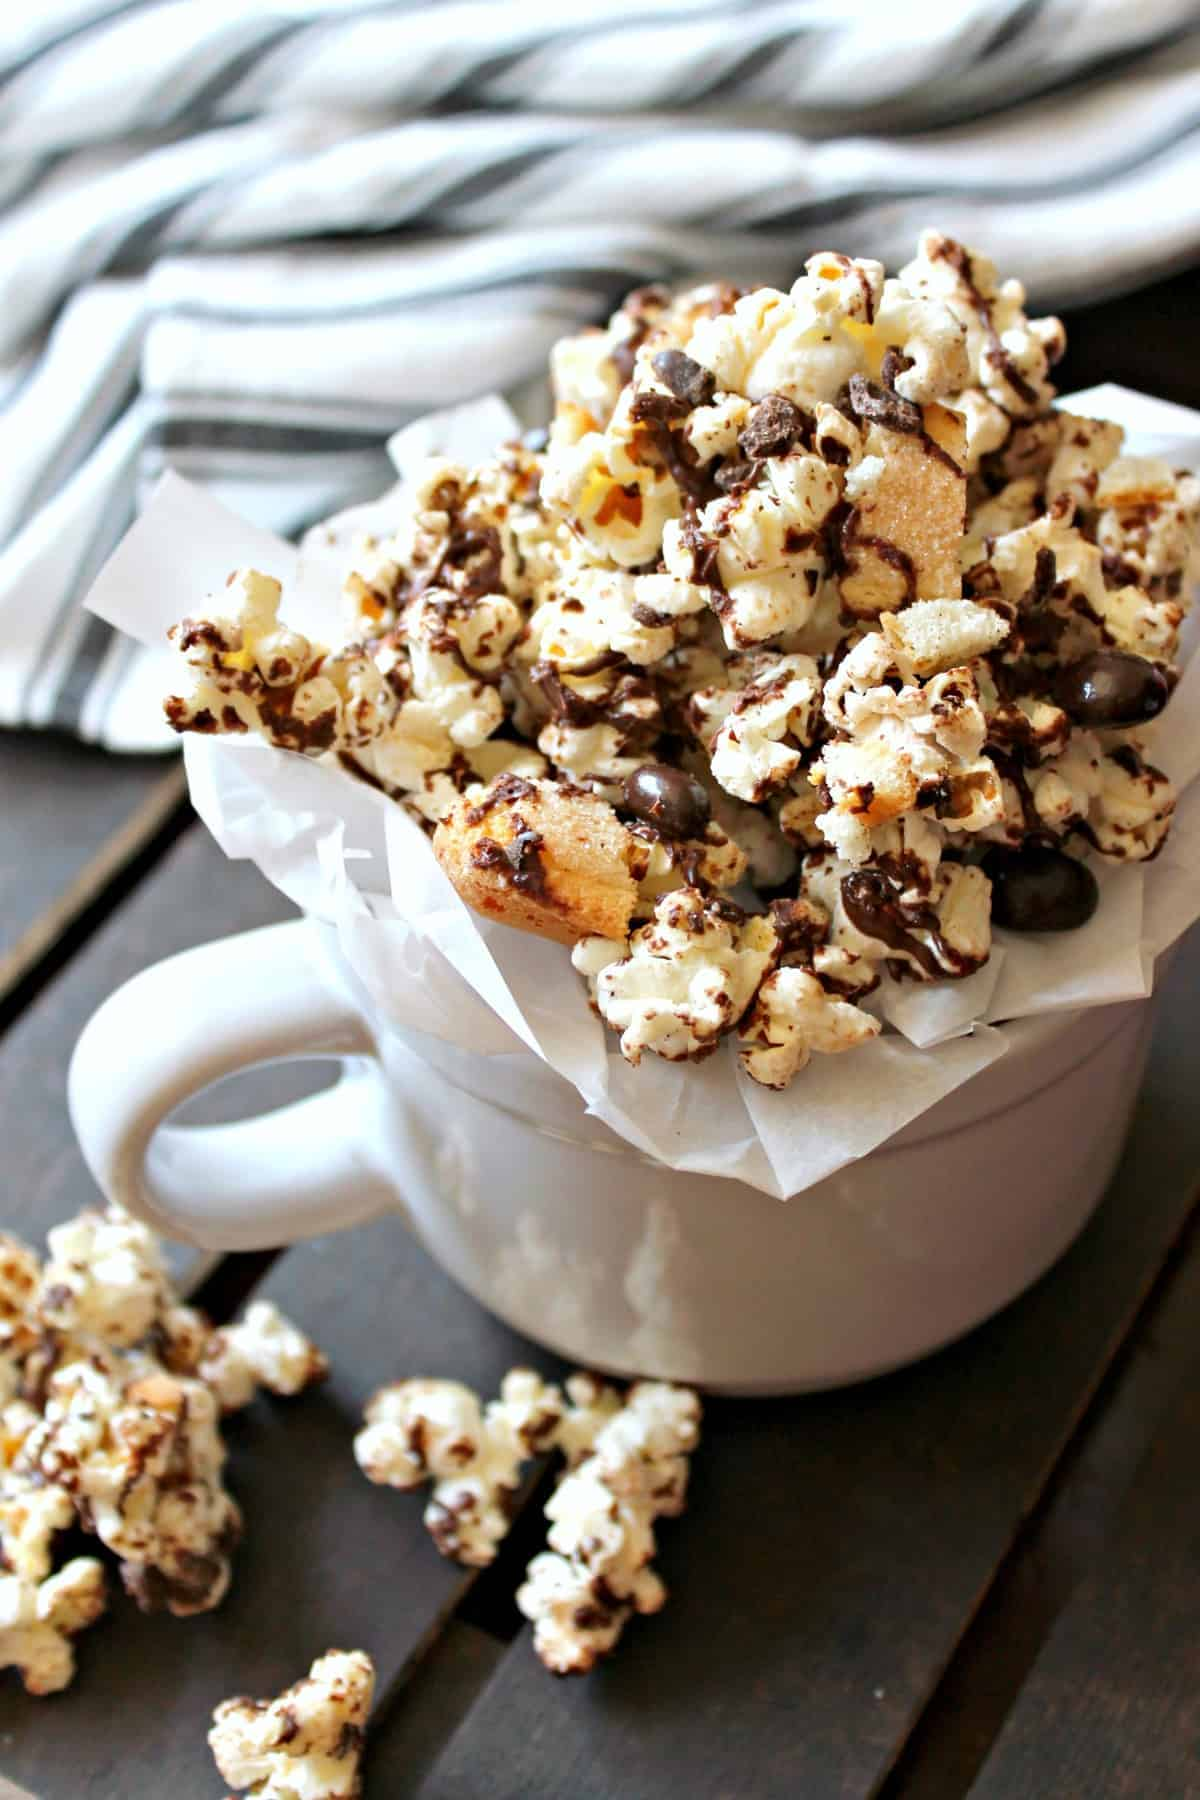 Chocolate and toffee coated popcorn with lady finger cookie bits